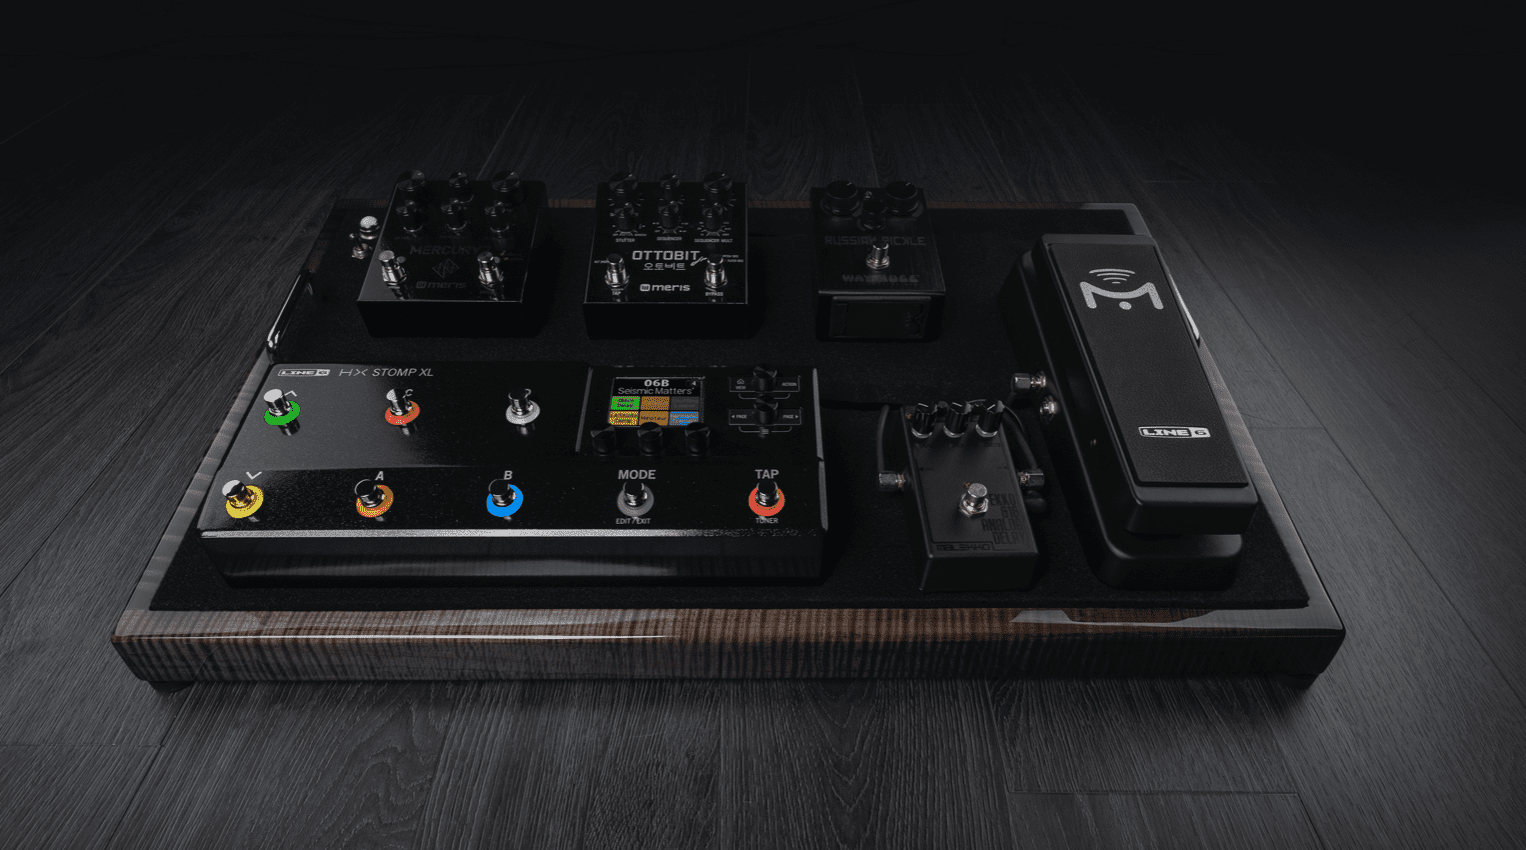 Leak: Is Line 6 about to drop the HX Stomp XL? - gearnews.com